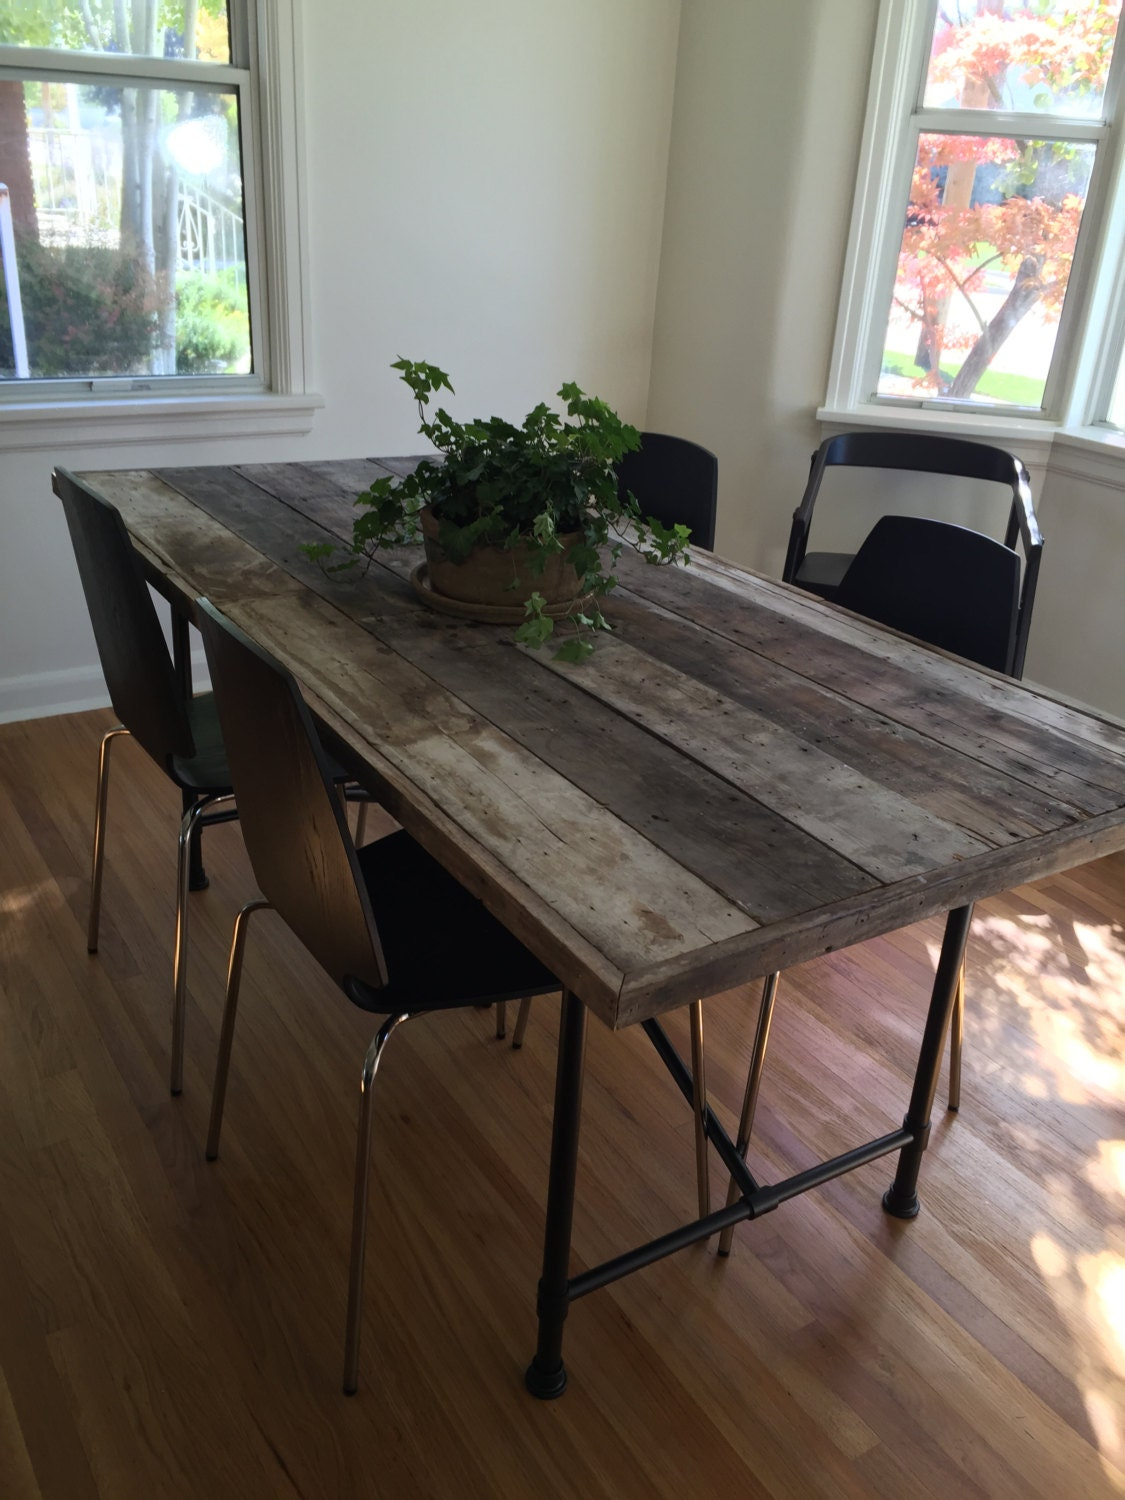 Reclaimed wood dining room table by elizabethanddavid on etsy - Barnwood dining room table ...